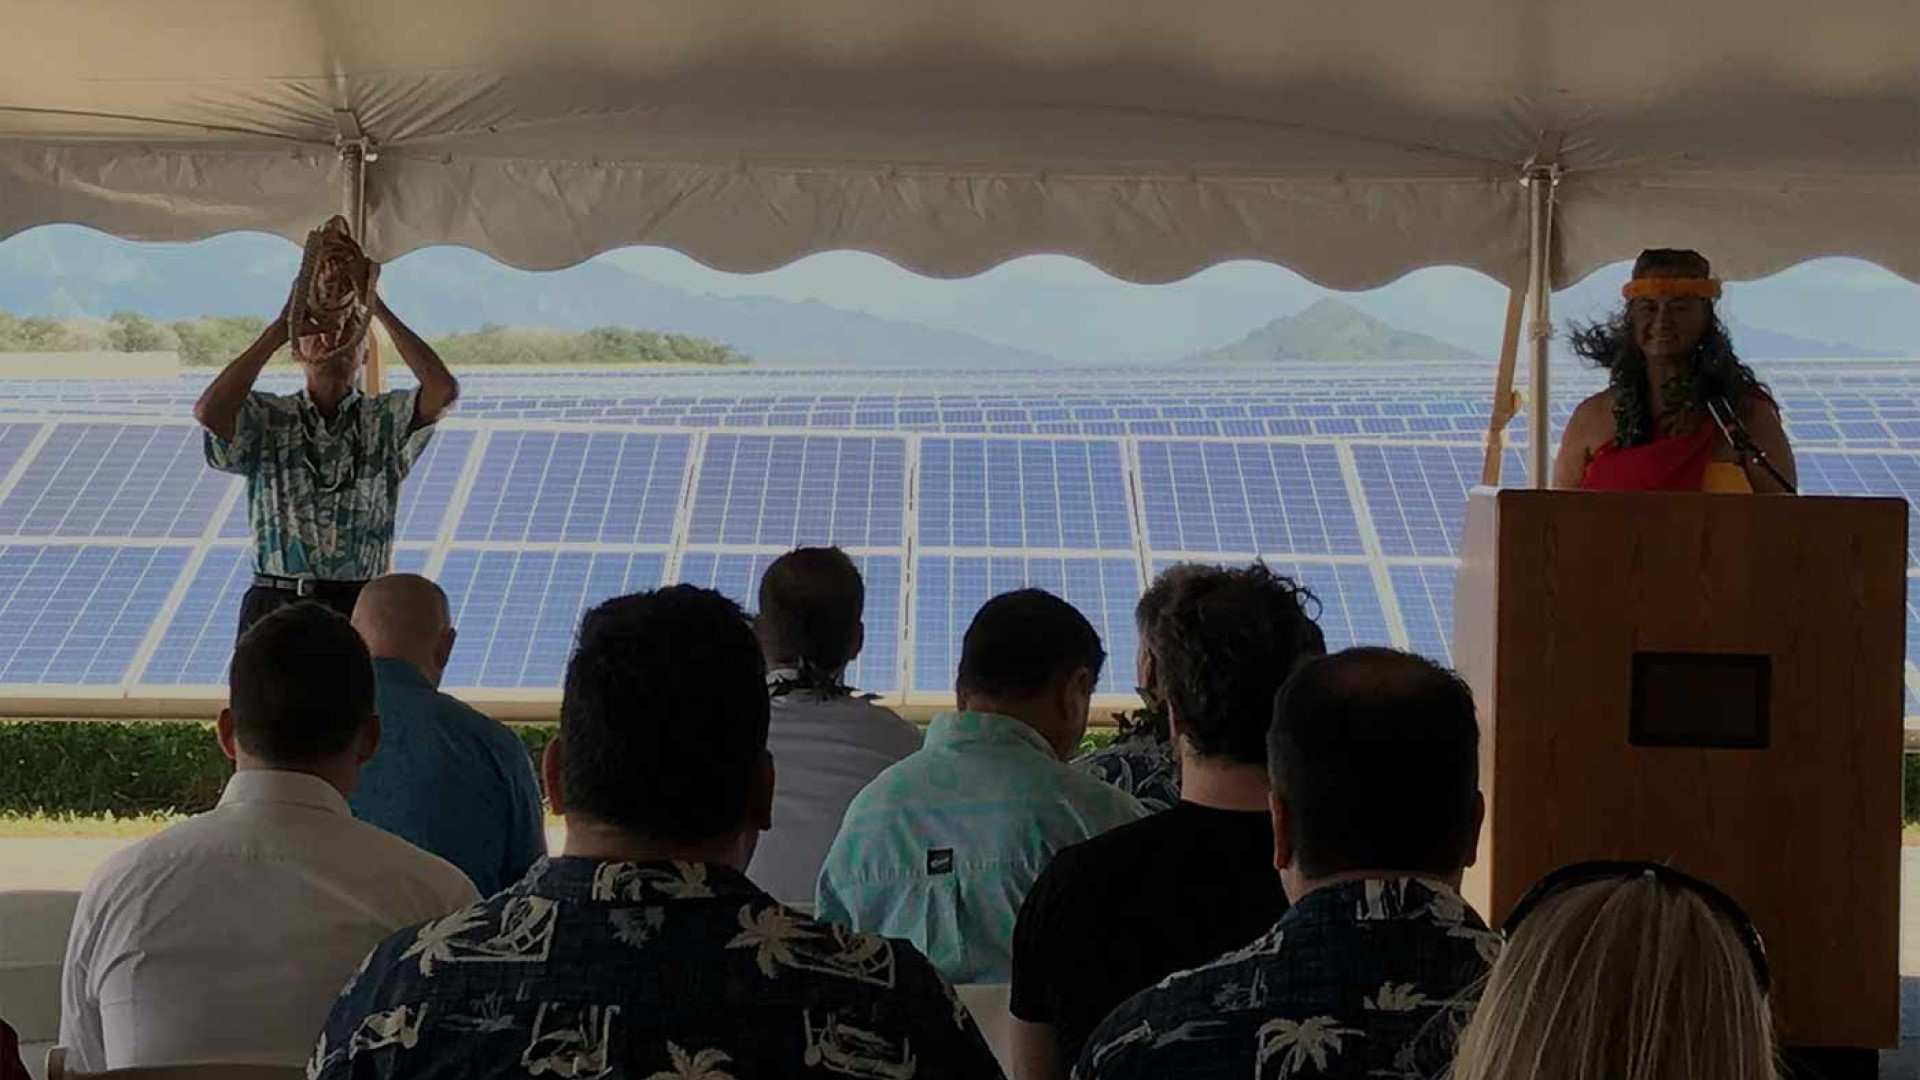 man blowing shell under a tent standing in front of a large solar array